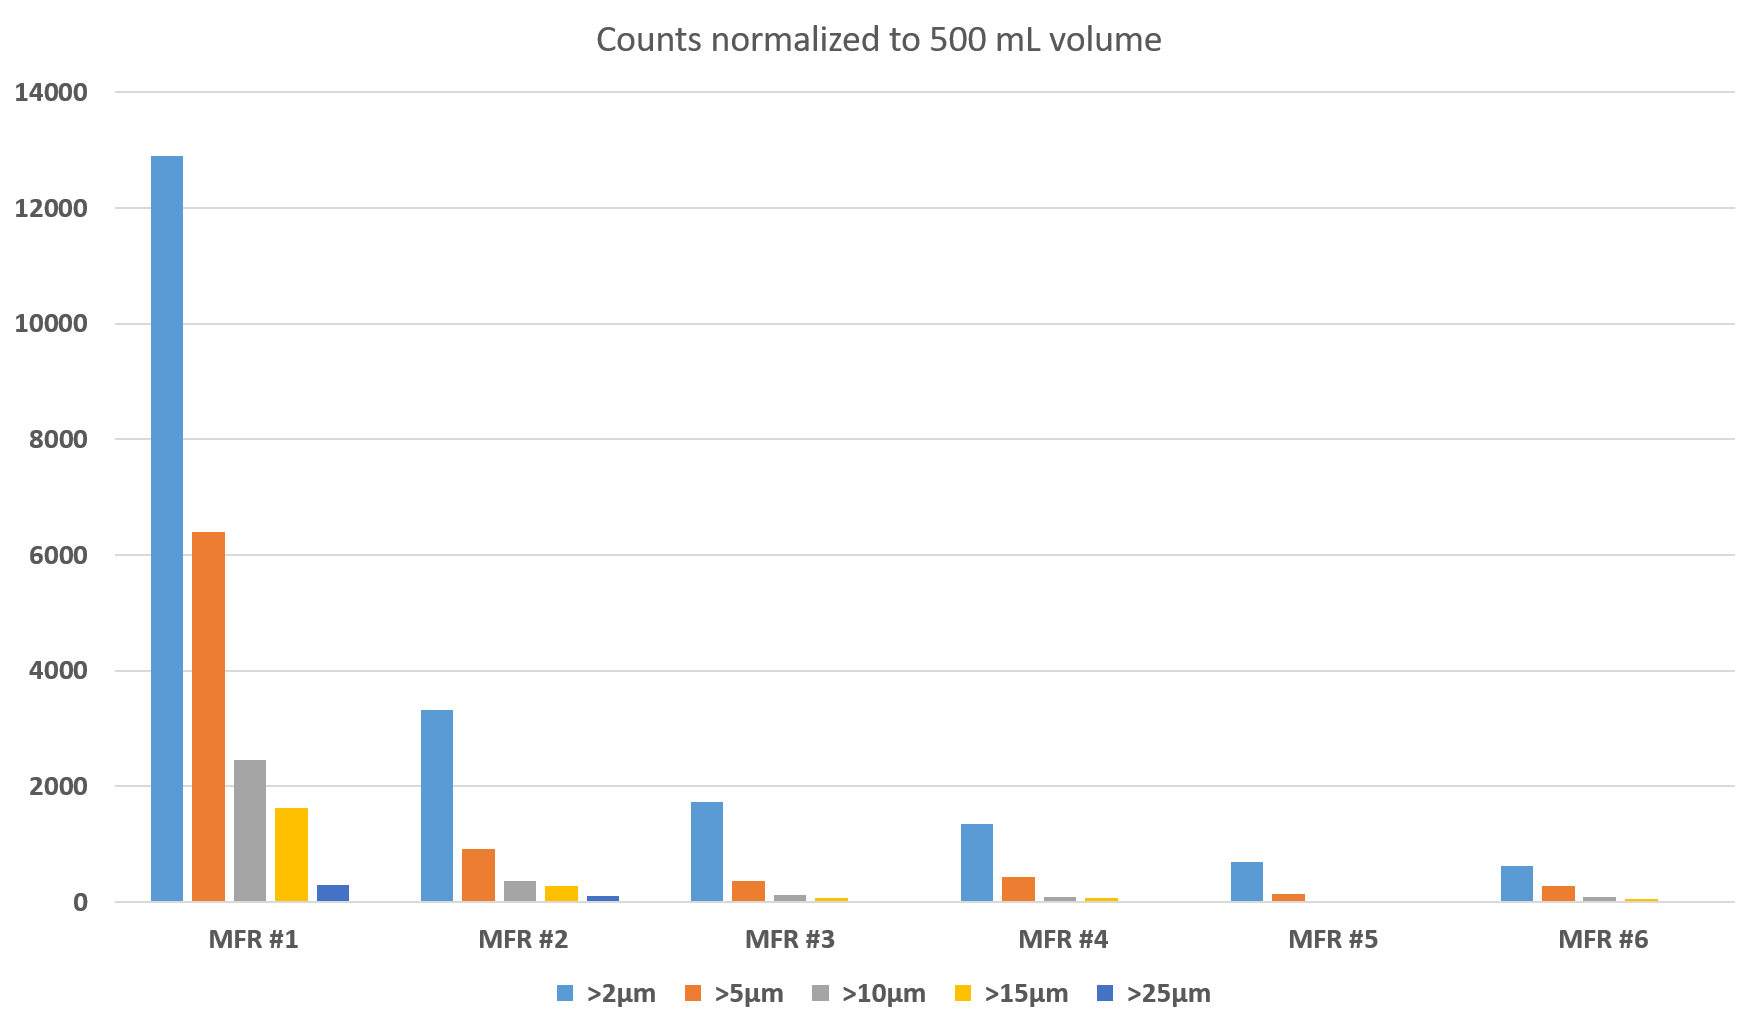 chart of 6 bottled water manufacturer particle counts on rolling mixer test